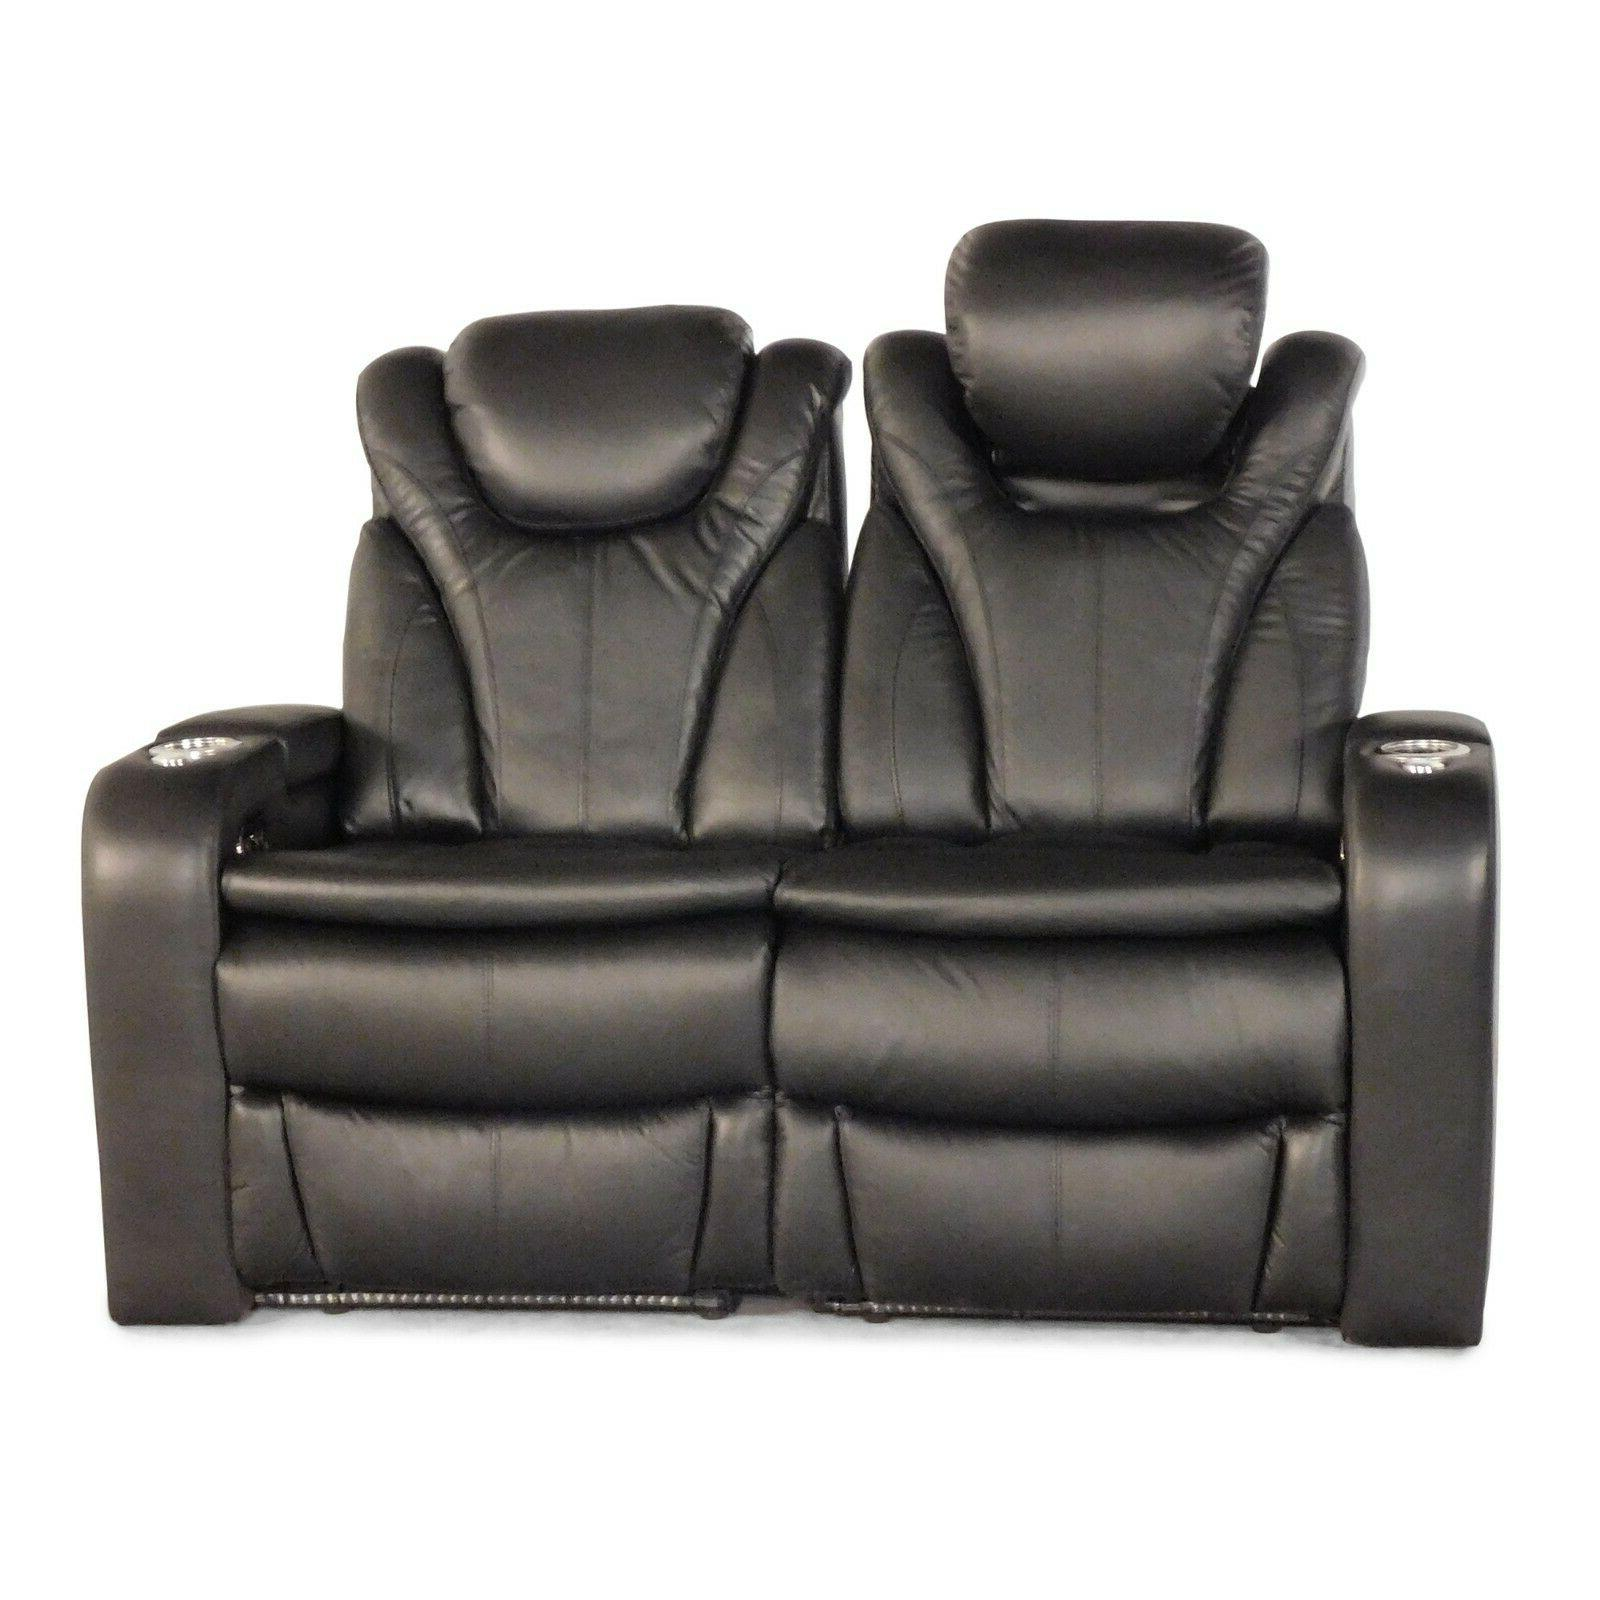 solaris black home theater seating chairs recliners